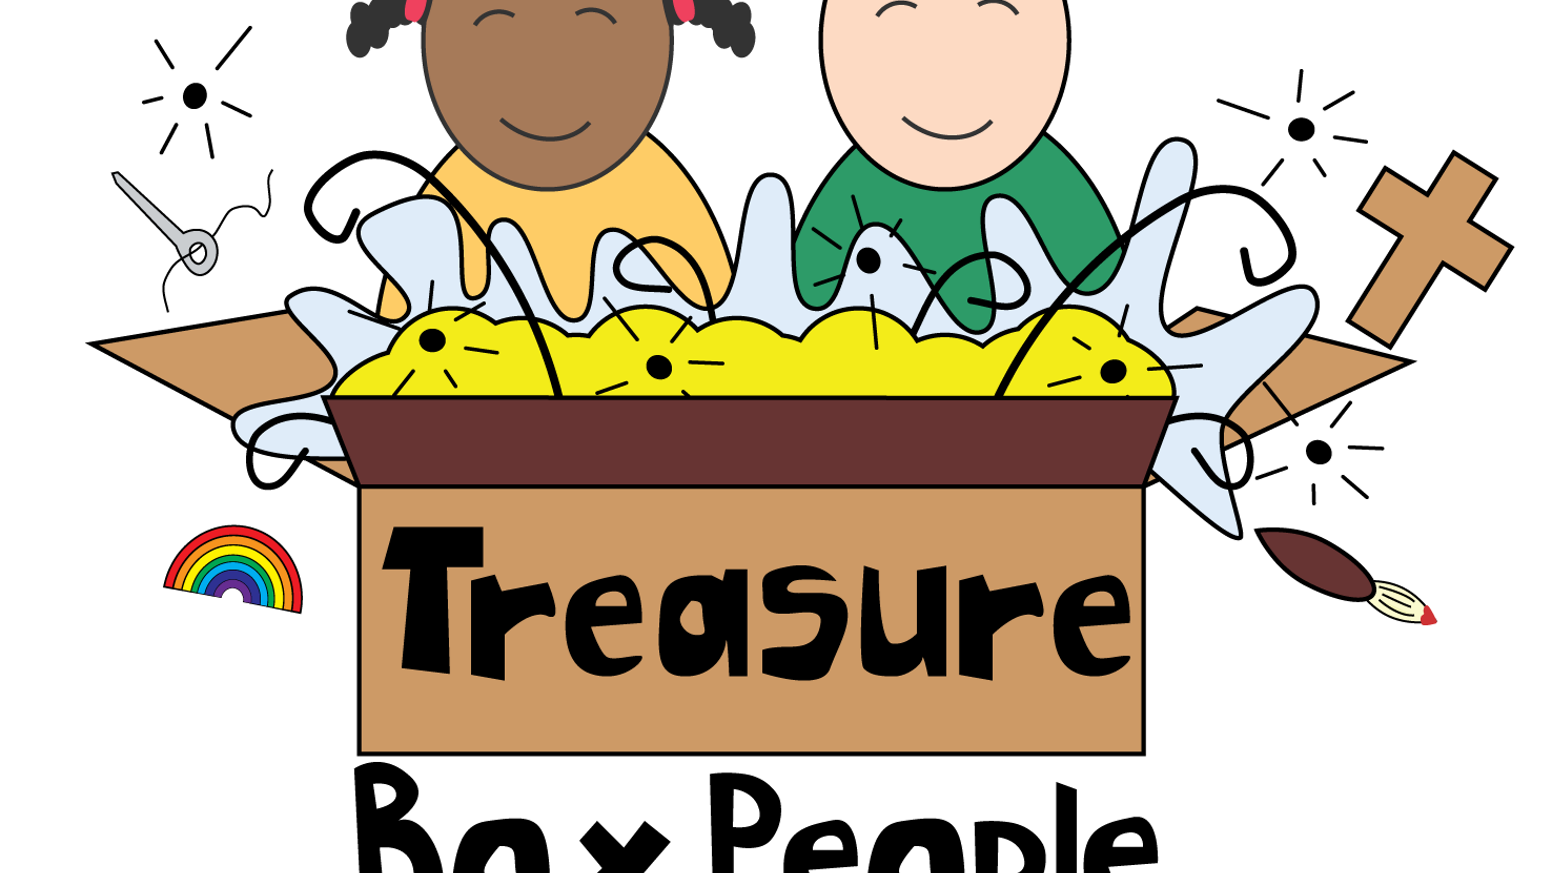 Treasure clipart word. The box people by